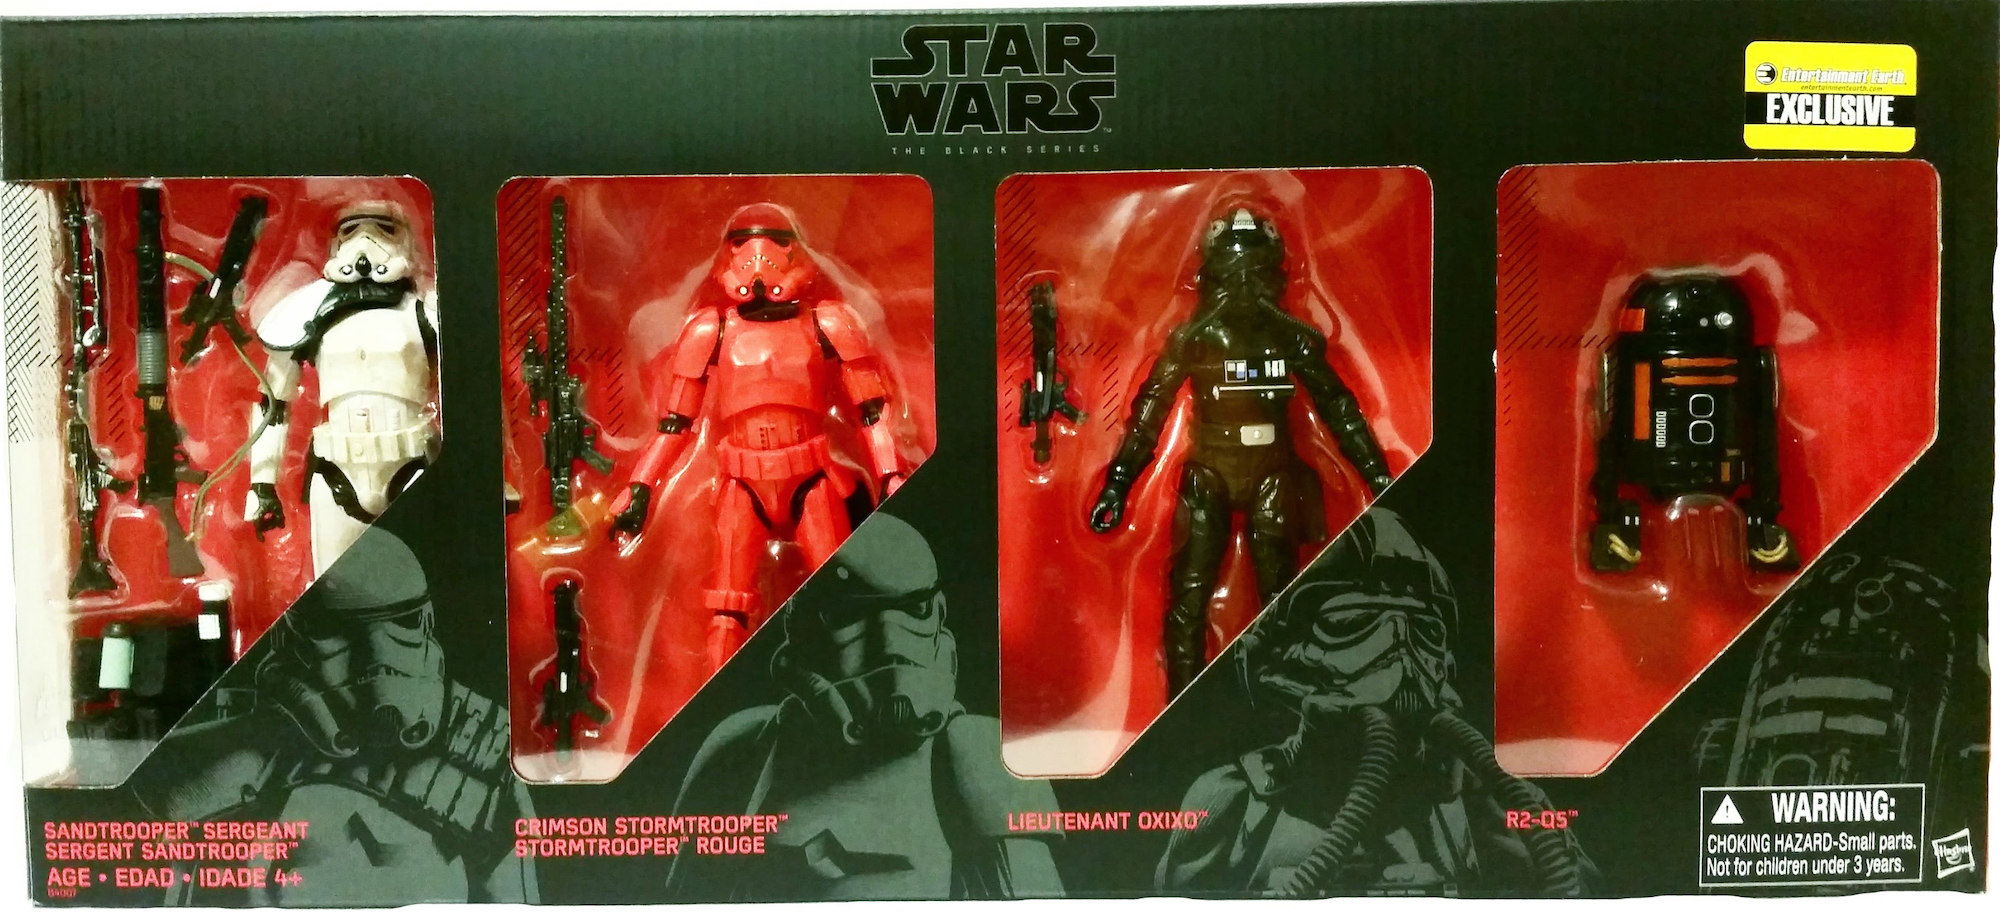 Star Wars Black Series Sandtrooper Stormtrooper Lieutenant OXIXO R2Q5 4-Pack